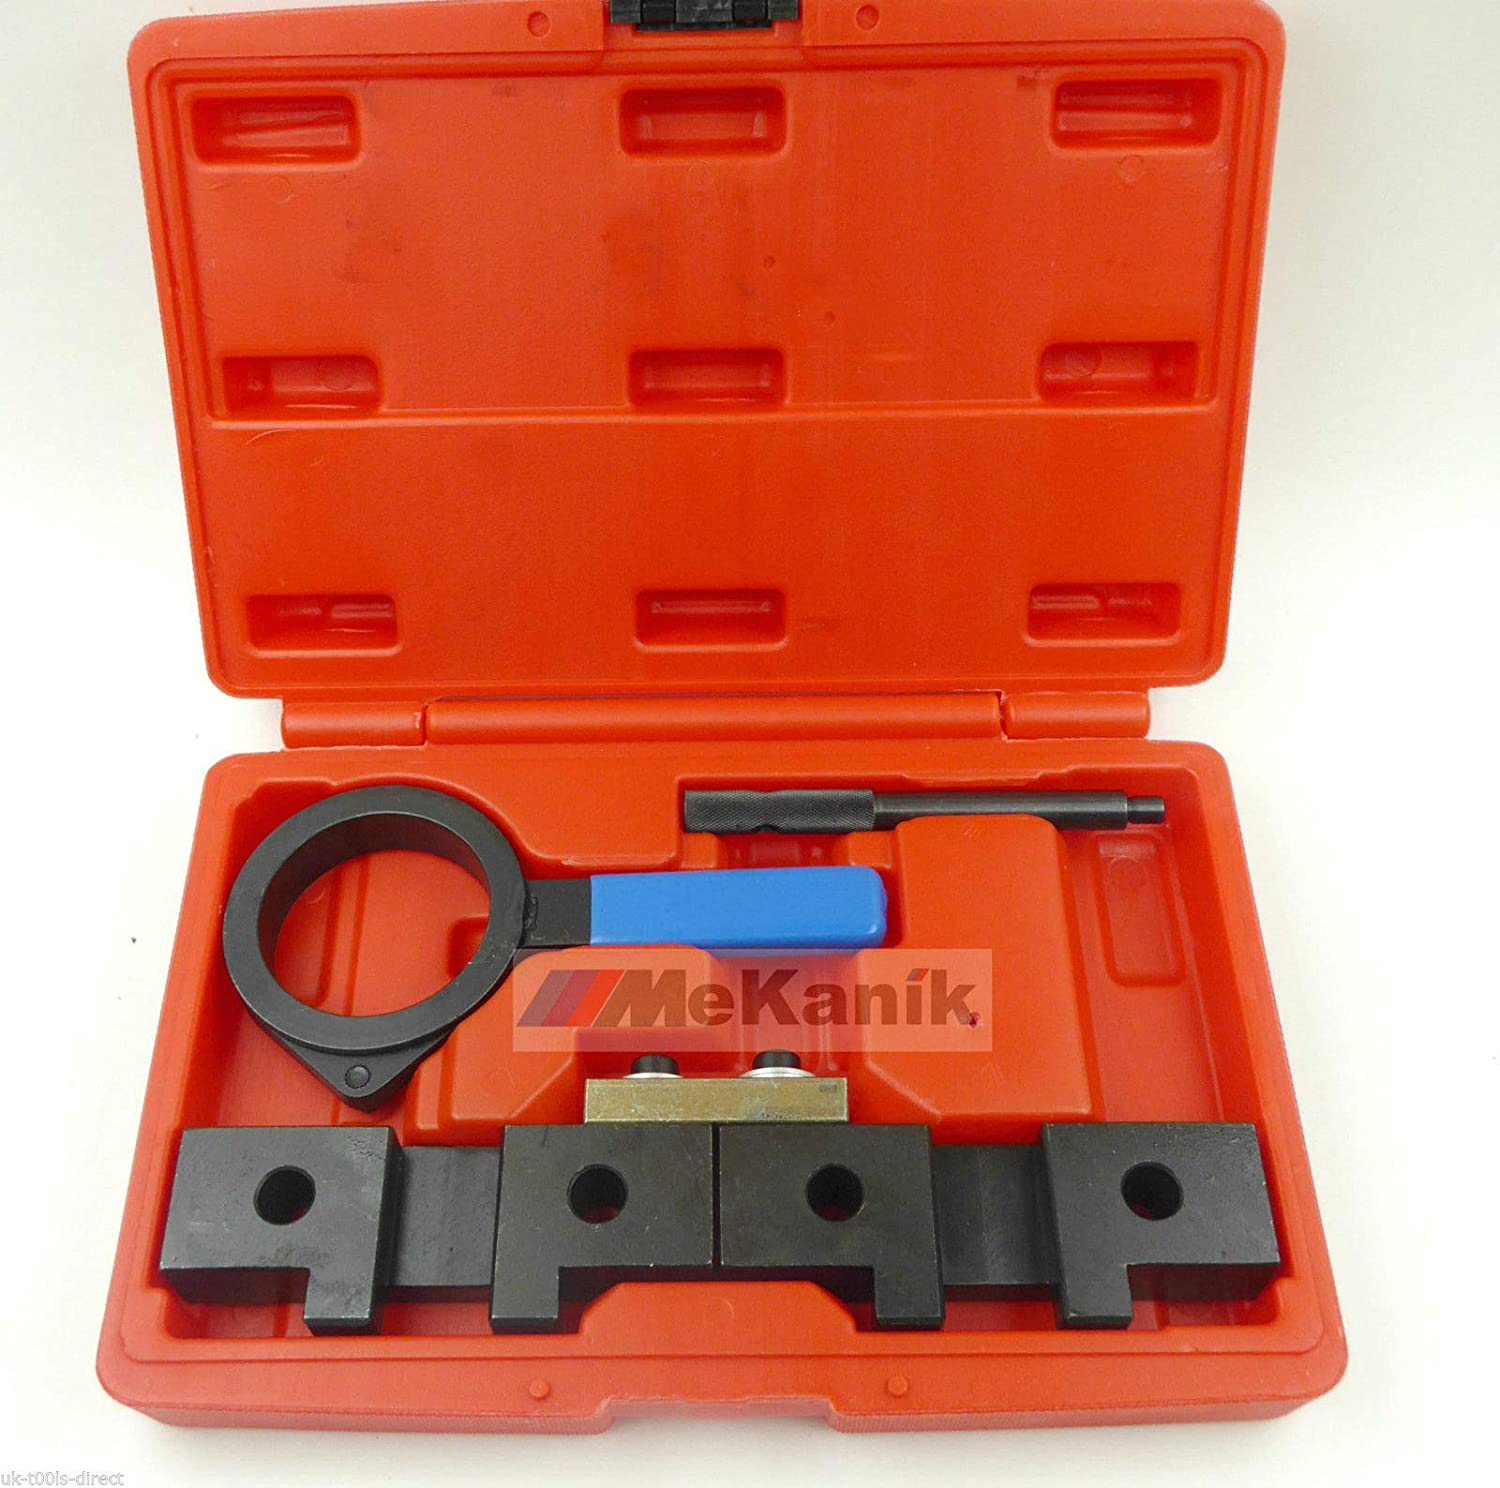 Mekanik SINGLE VANOS CAMSHAFT TIMING KIT Compatible with BMW 4 /& 6 Cylinder None Variable Engines